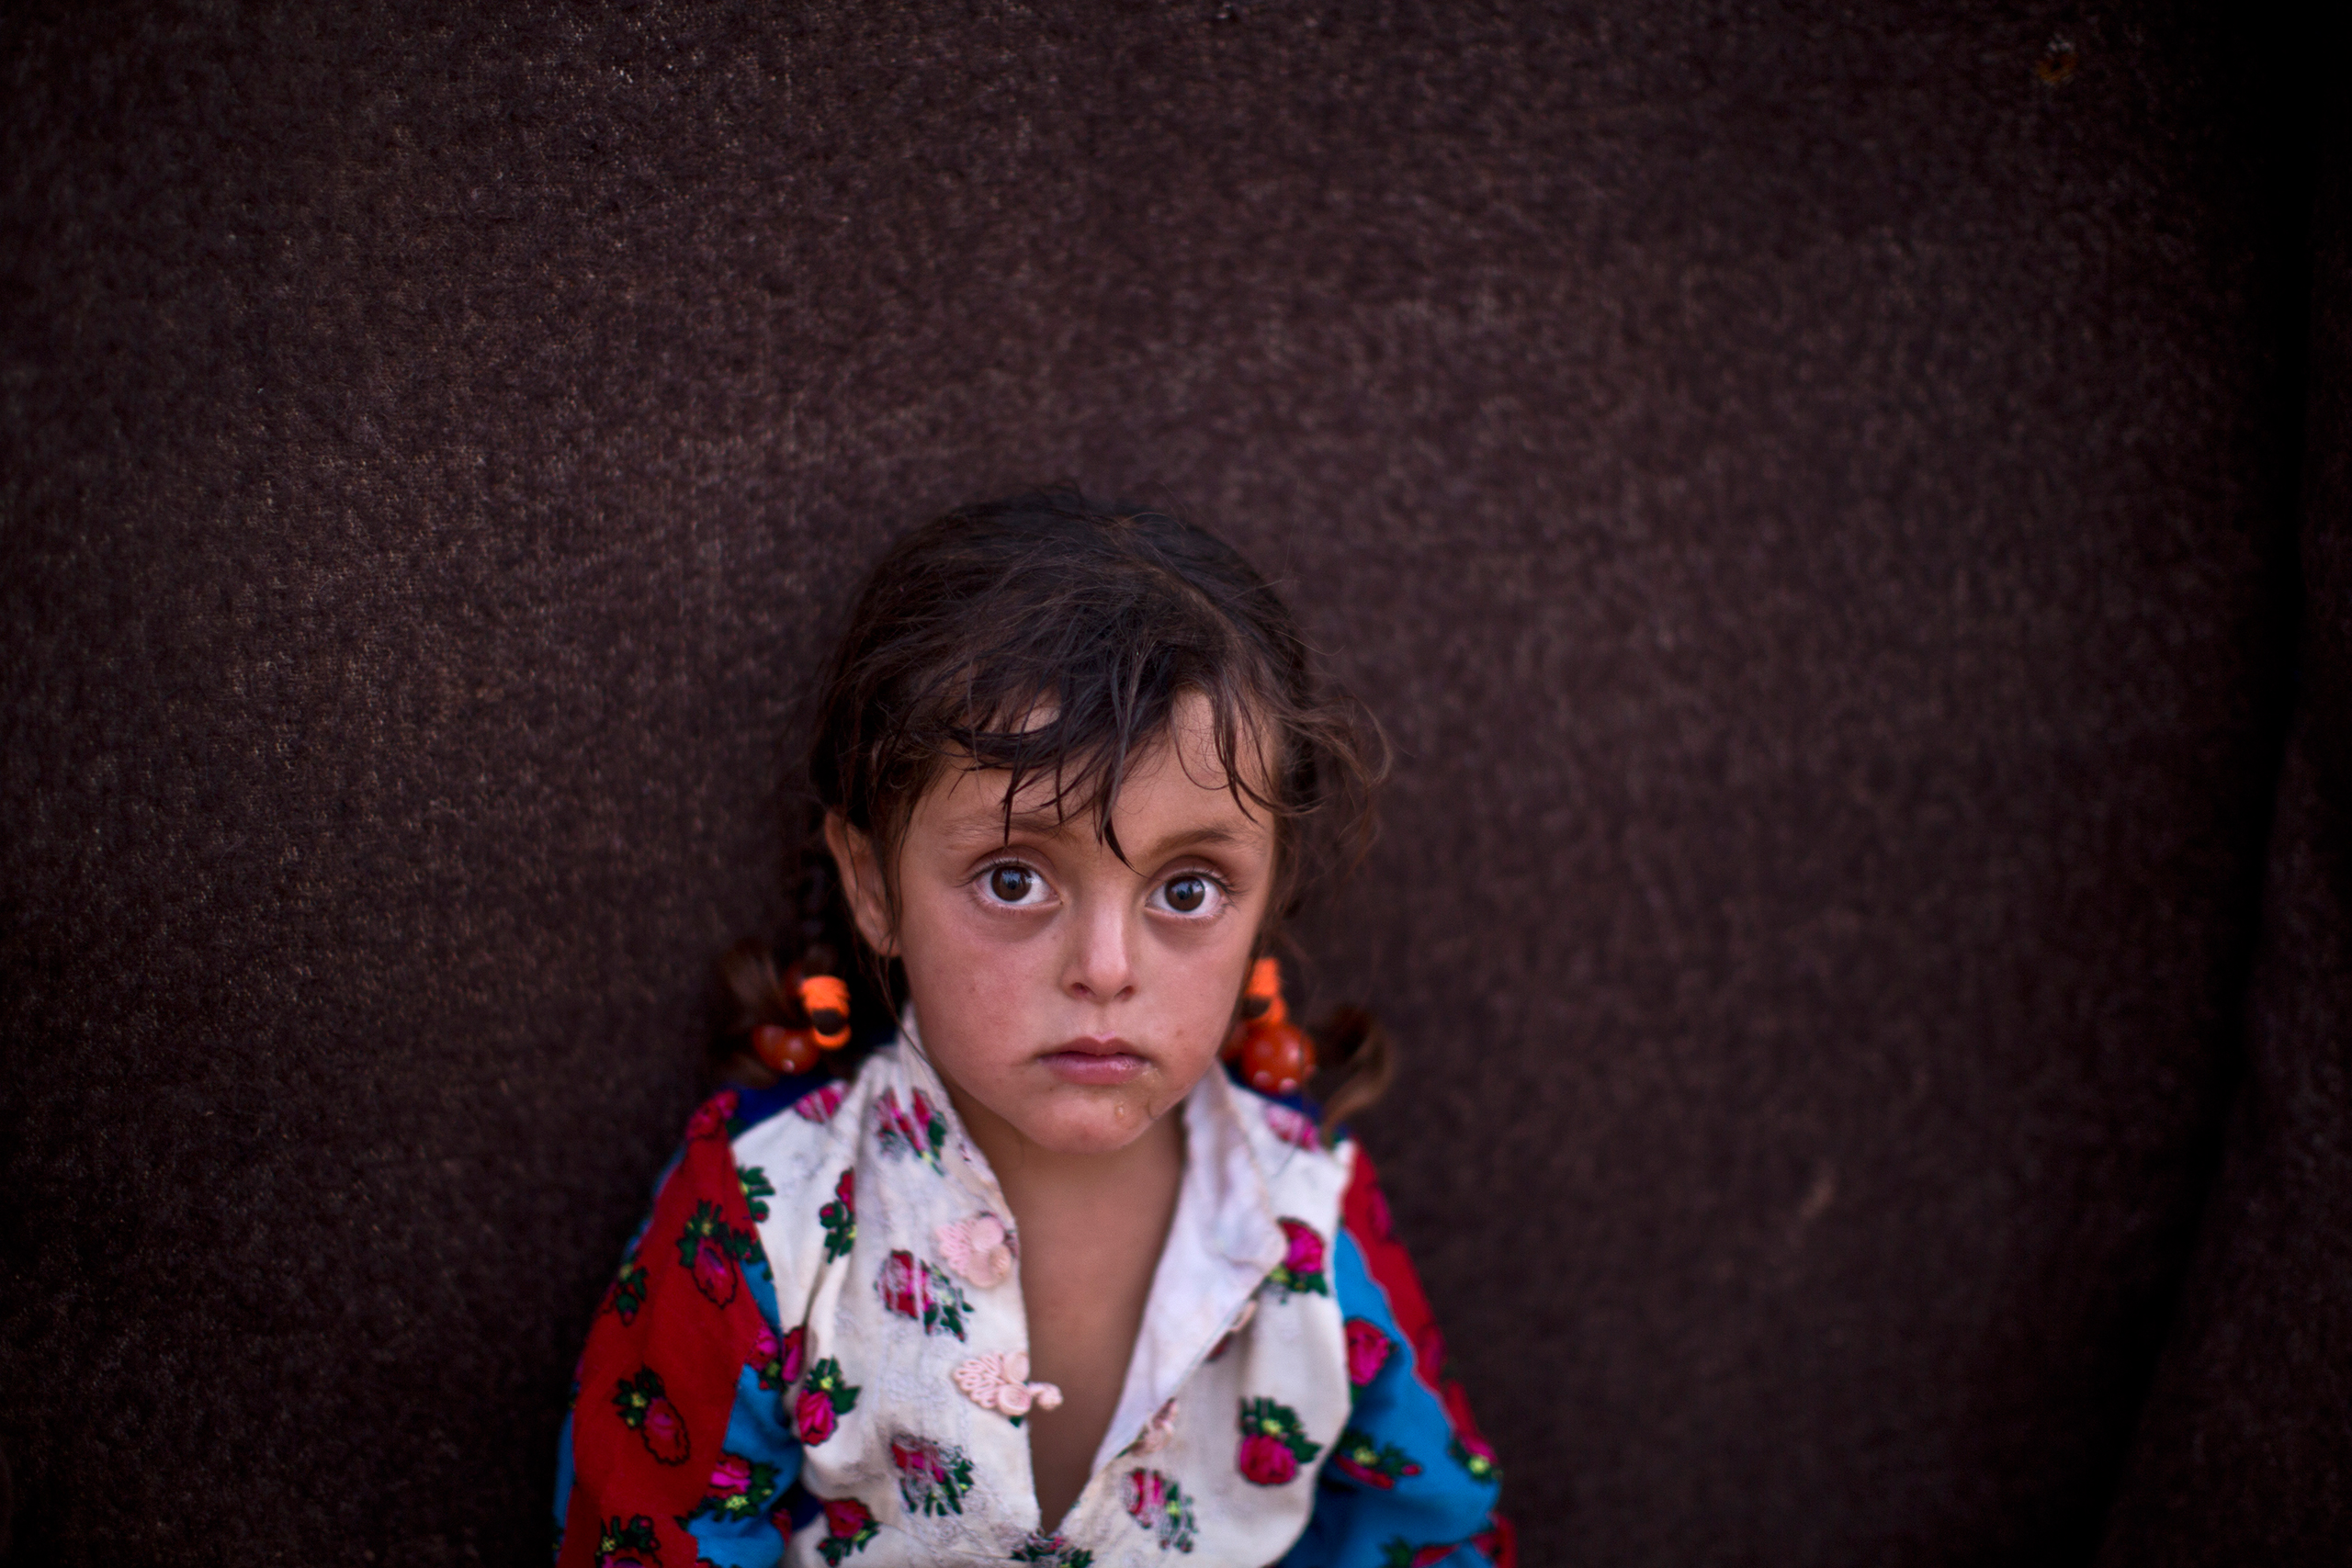 Zahra Mahmoud, four, sits in front of her family's makeshift home at an informal tented settlement near the Syrian border on the outskirts of Mafraq, Jordan, on Aug. 19, 2015.